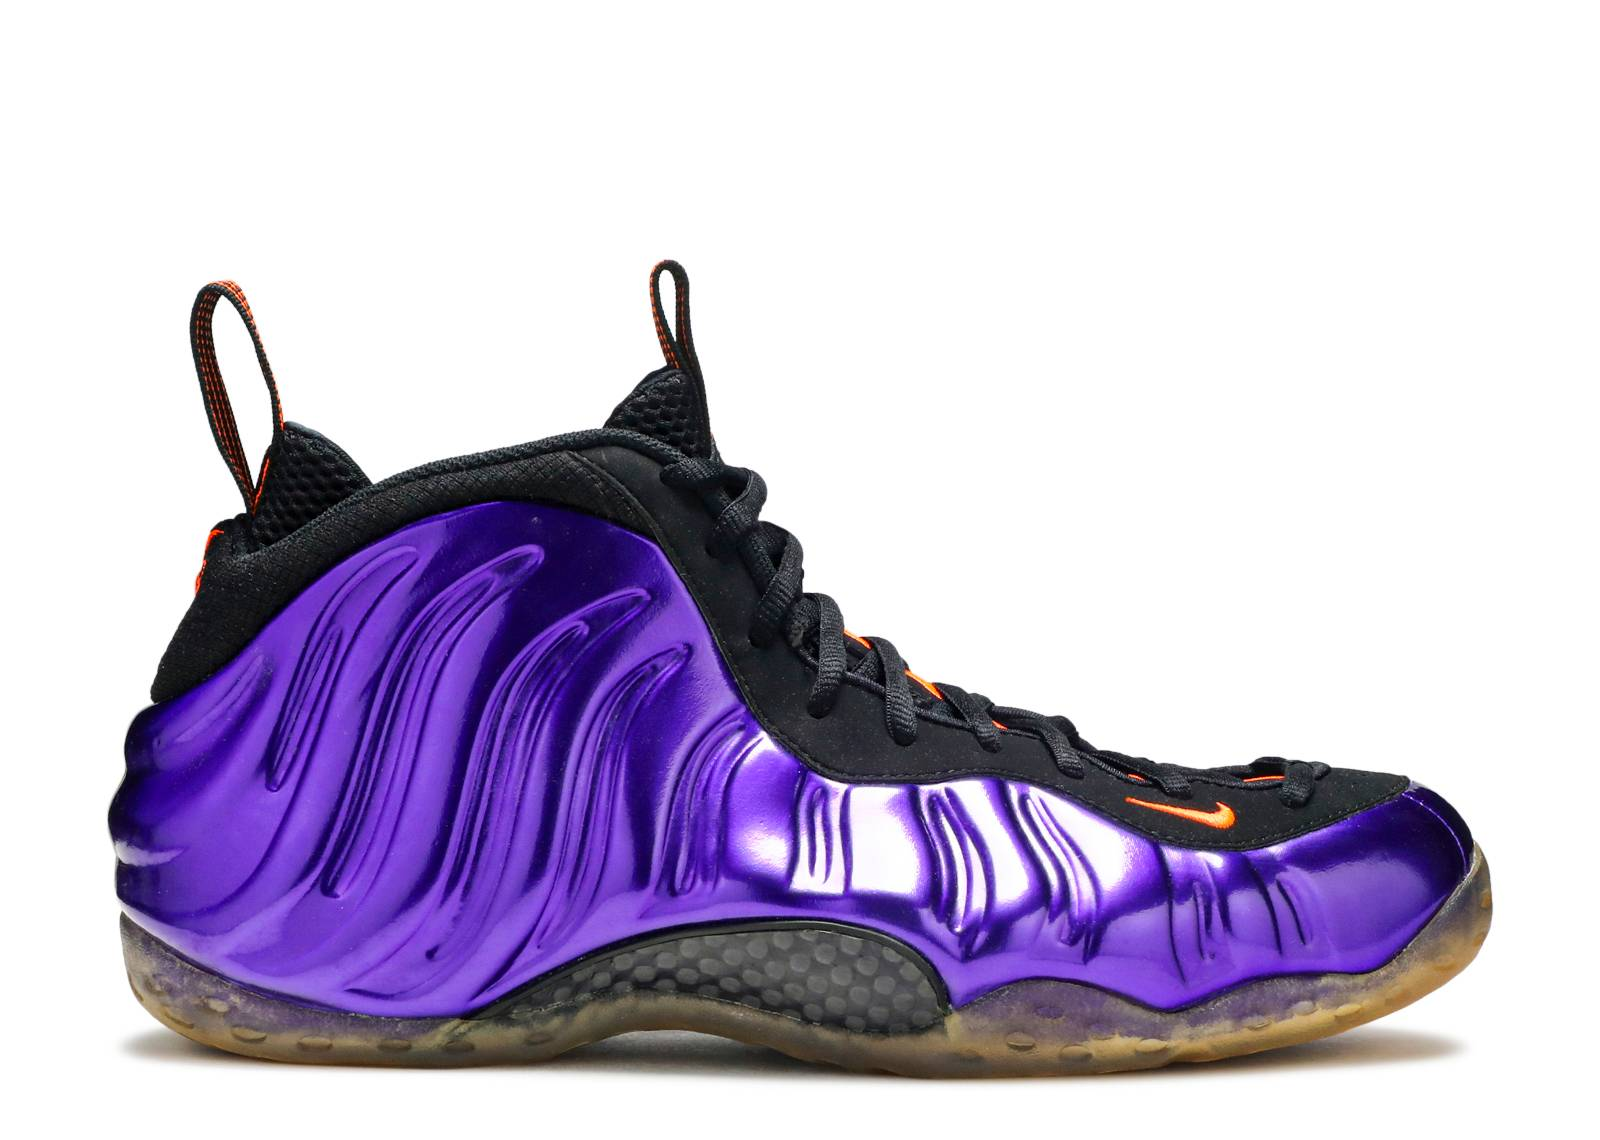 Nike Foamposite One Mens Phoenix Suns Electro Purple Total OrangeBlack 314996501 Discount YChad